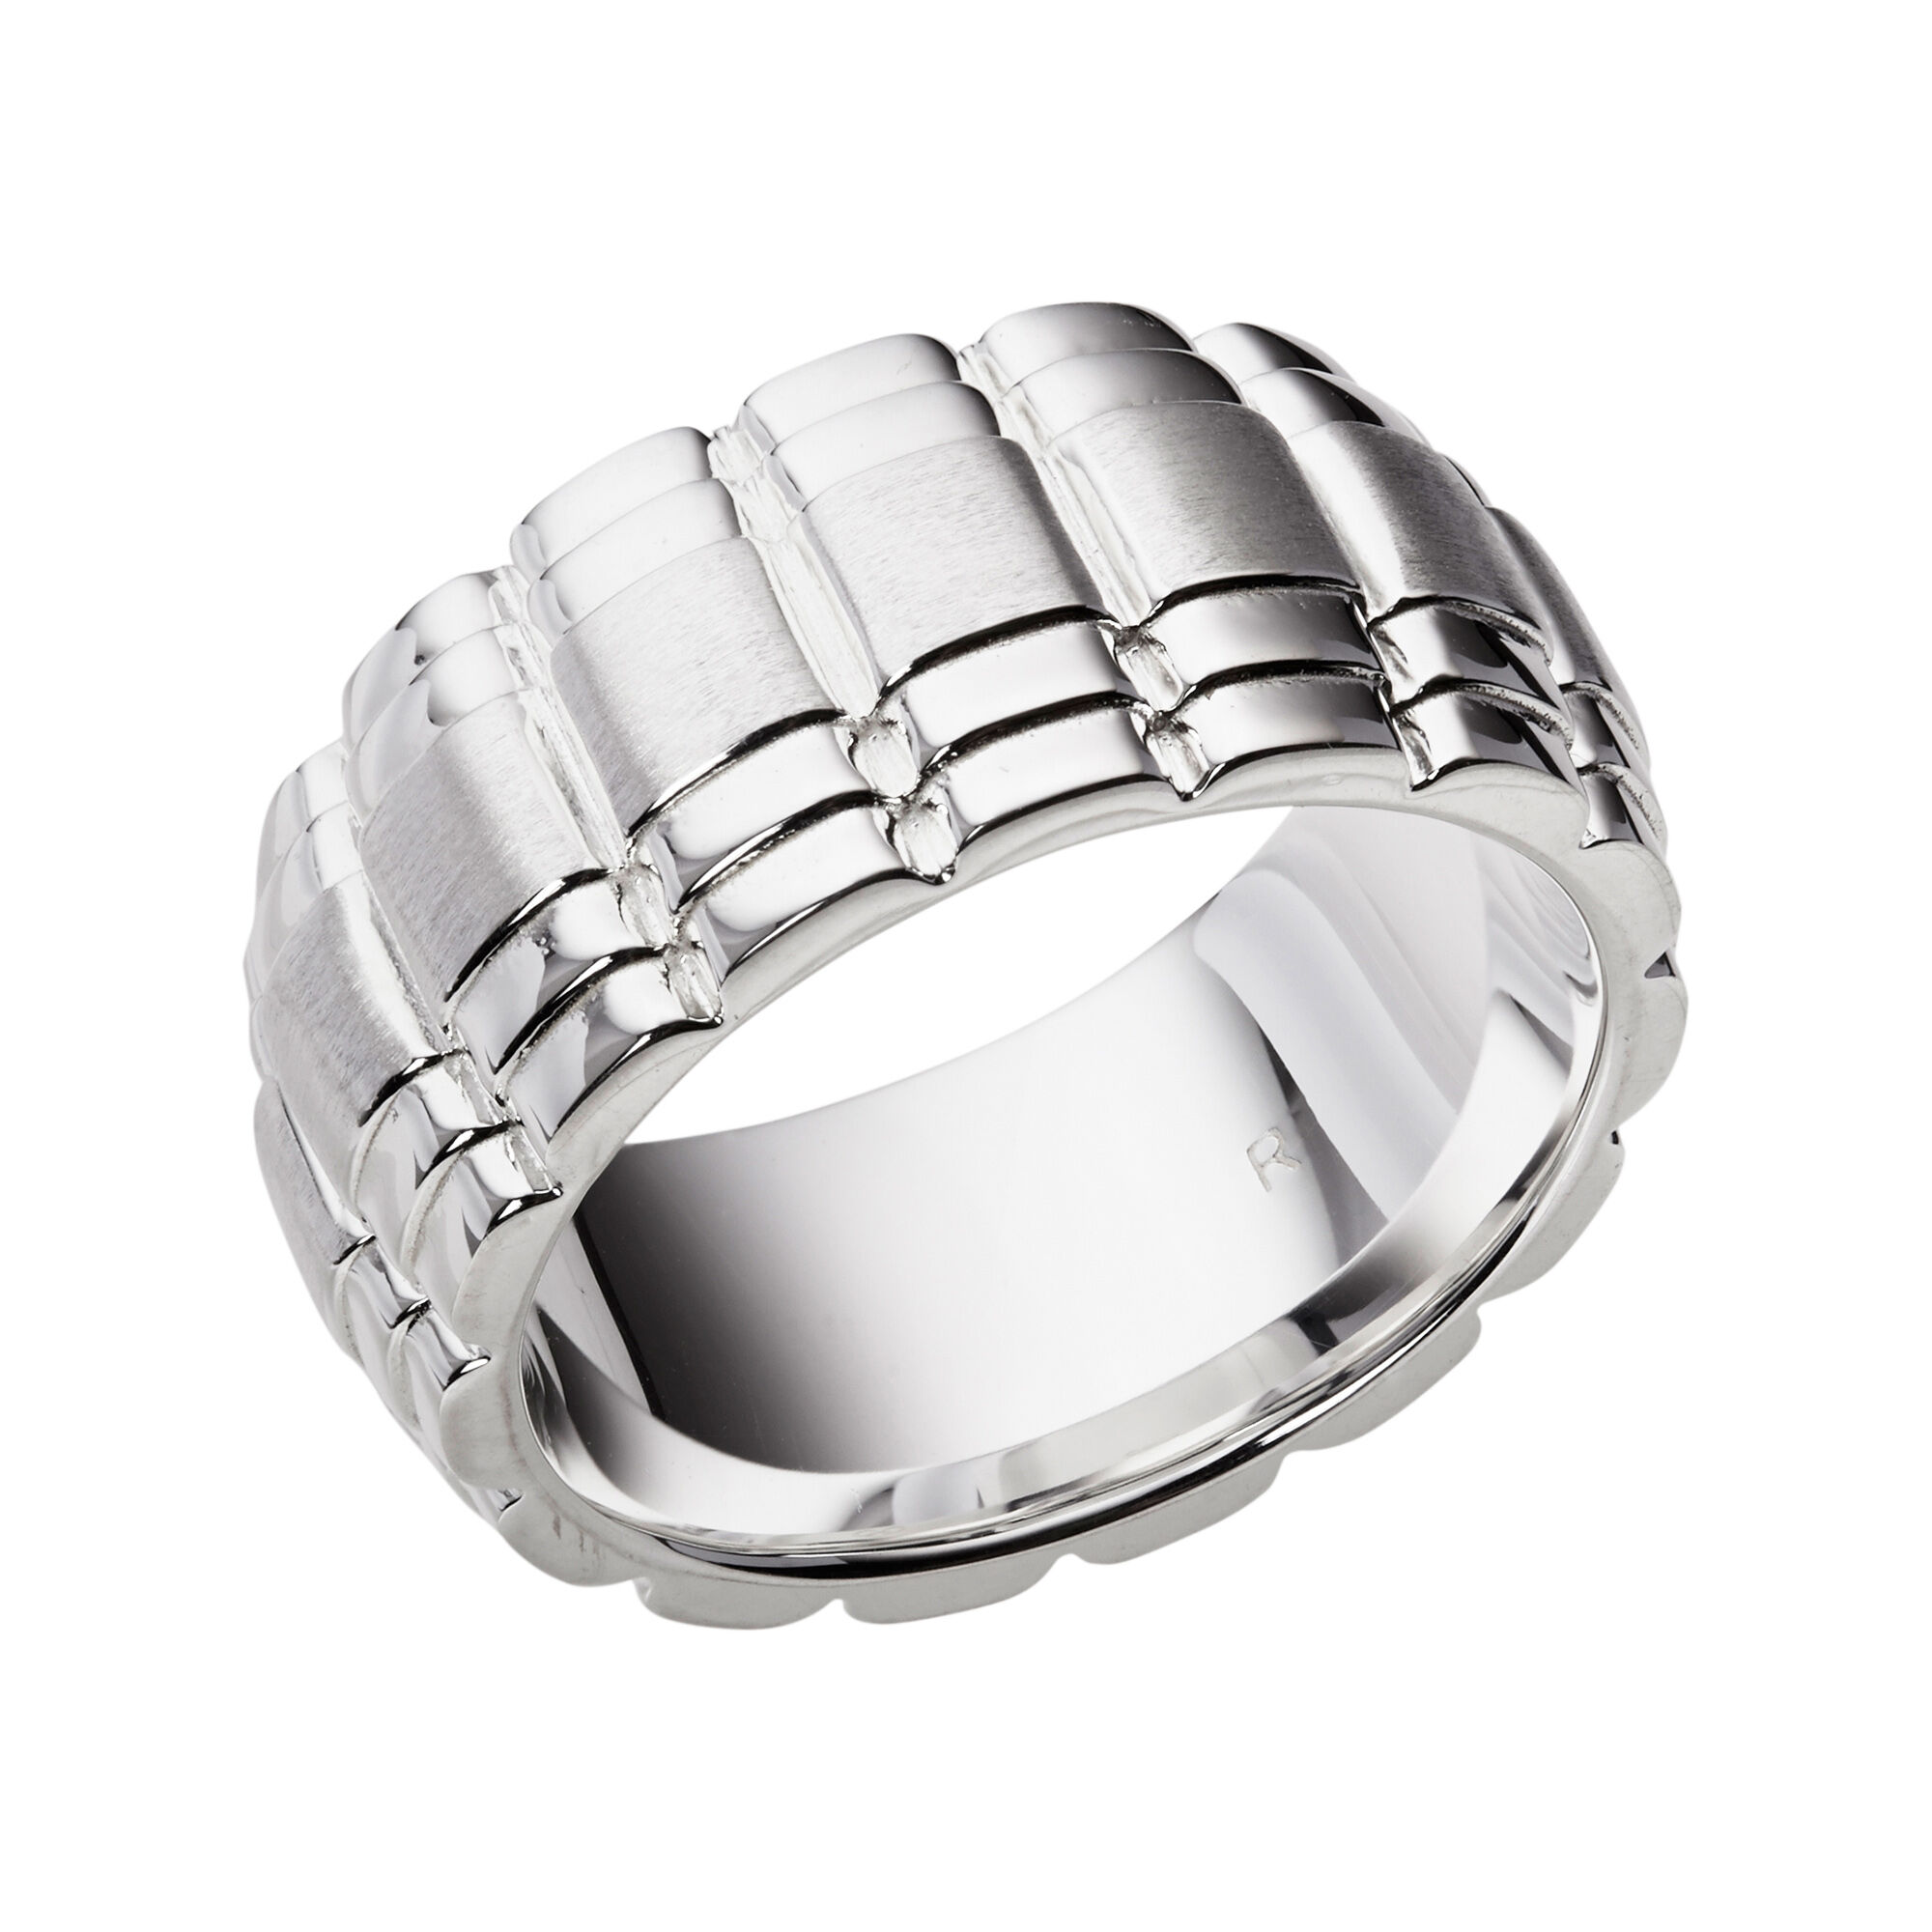 ring rings original wire jewellery sdjfsdkfjh product sterling otisjaxonsilverjewellery interwoven jaxon silver by otis